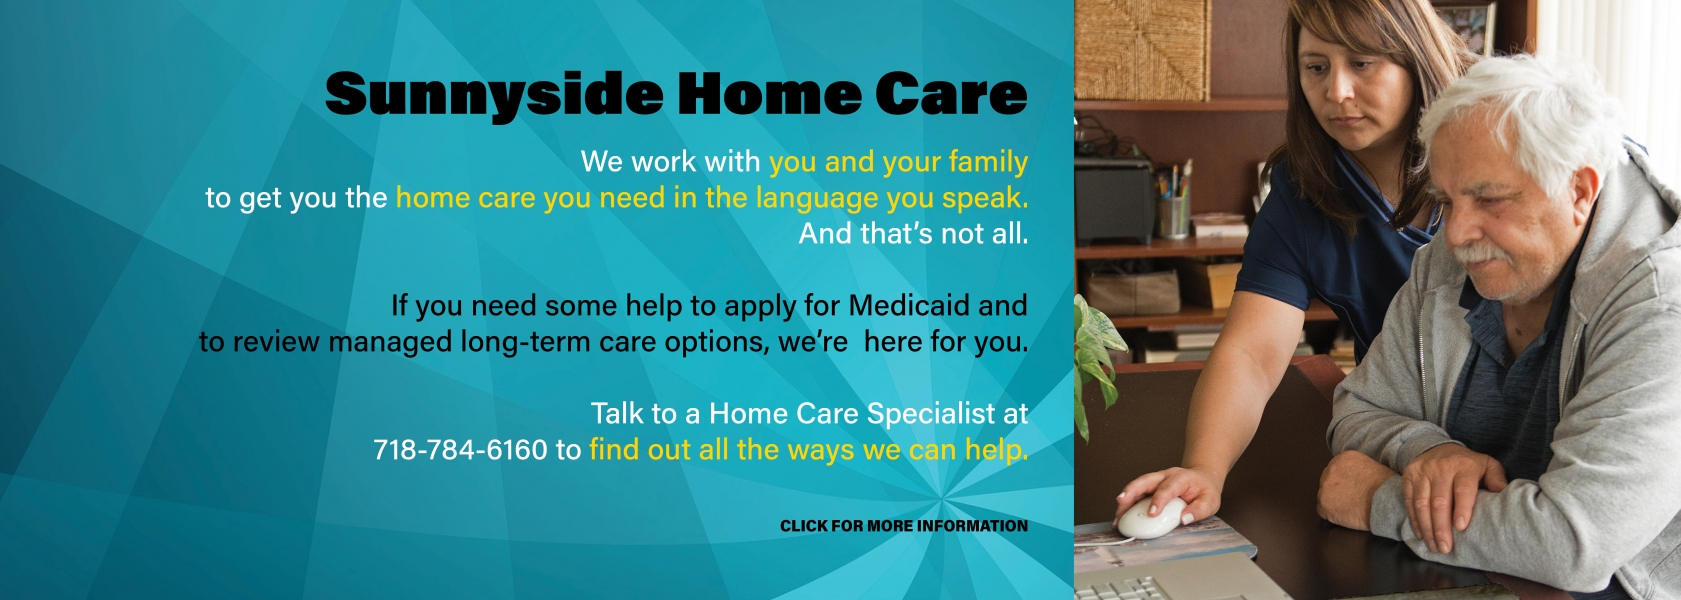 SCS Homecare helps you get the help you need